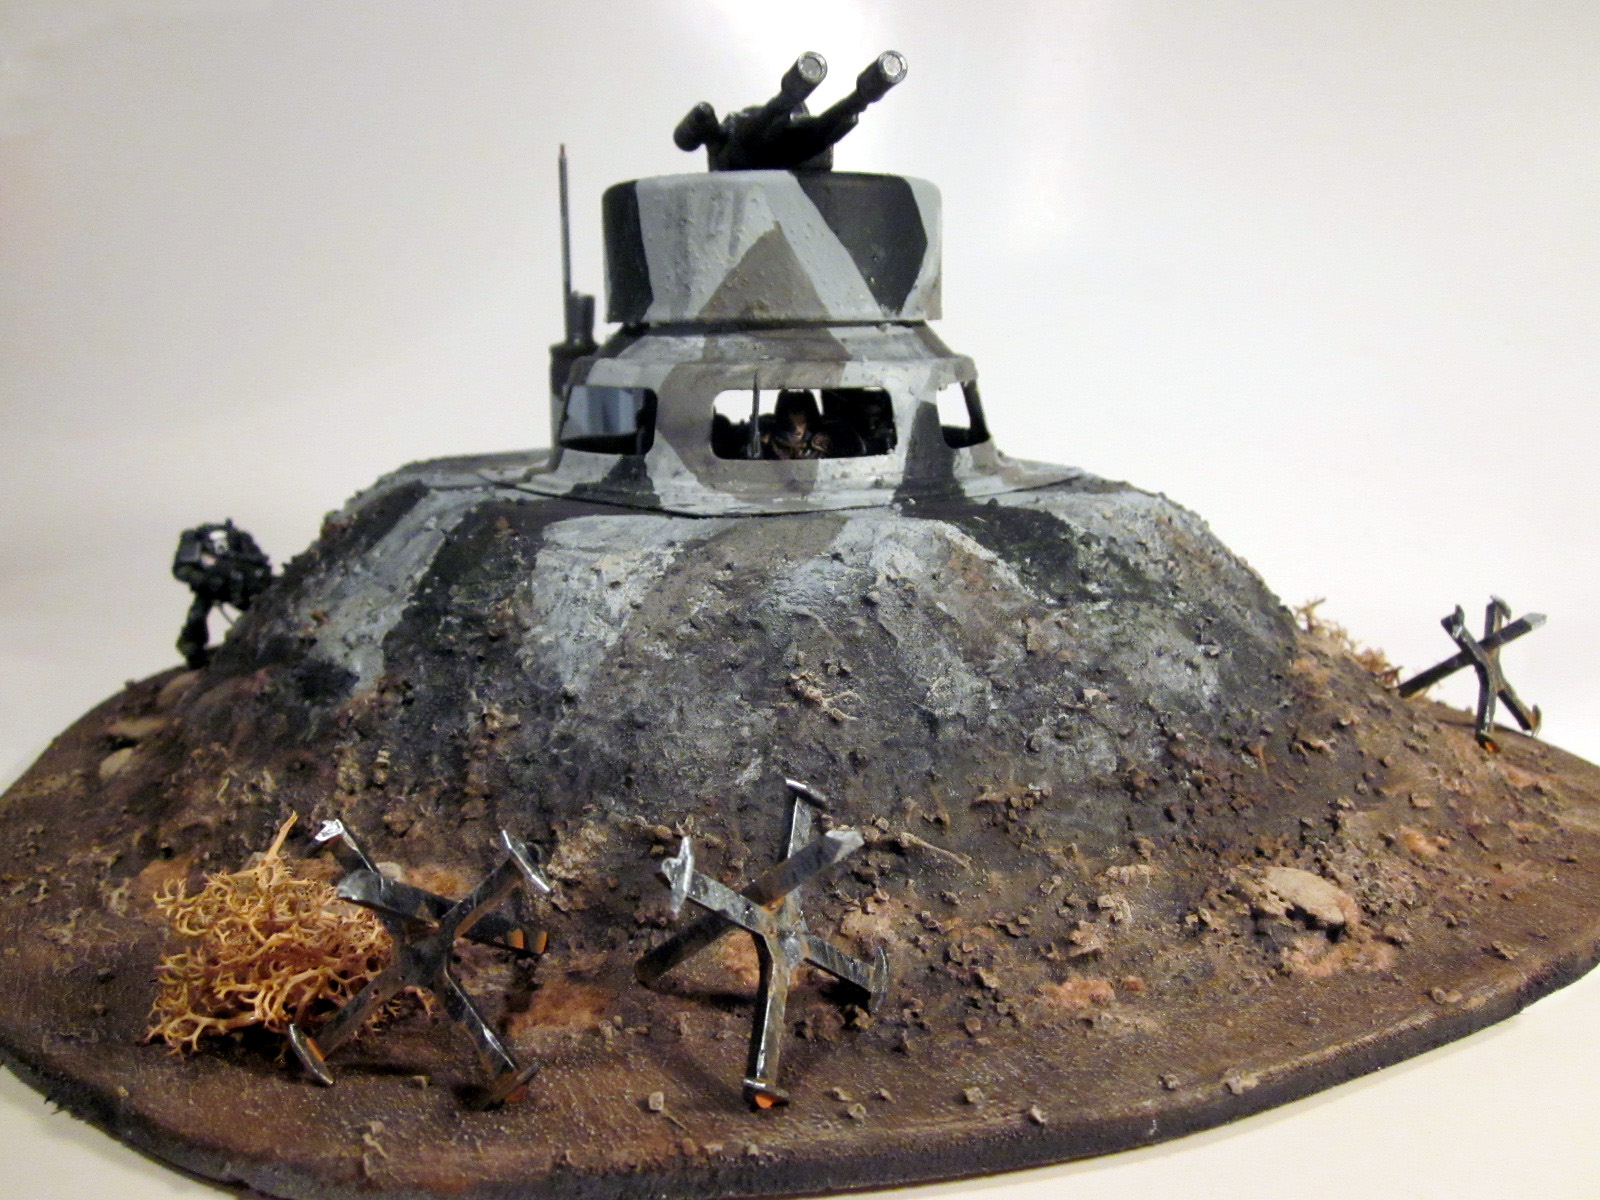 Battleground Hobbies: How to Build a Bunker for Warhammer 40k Terrain